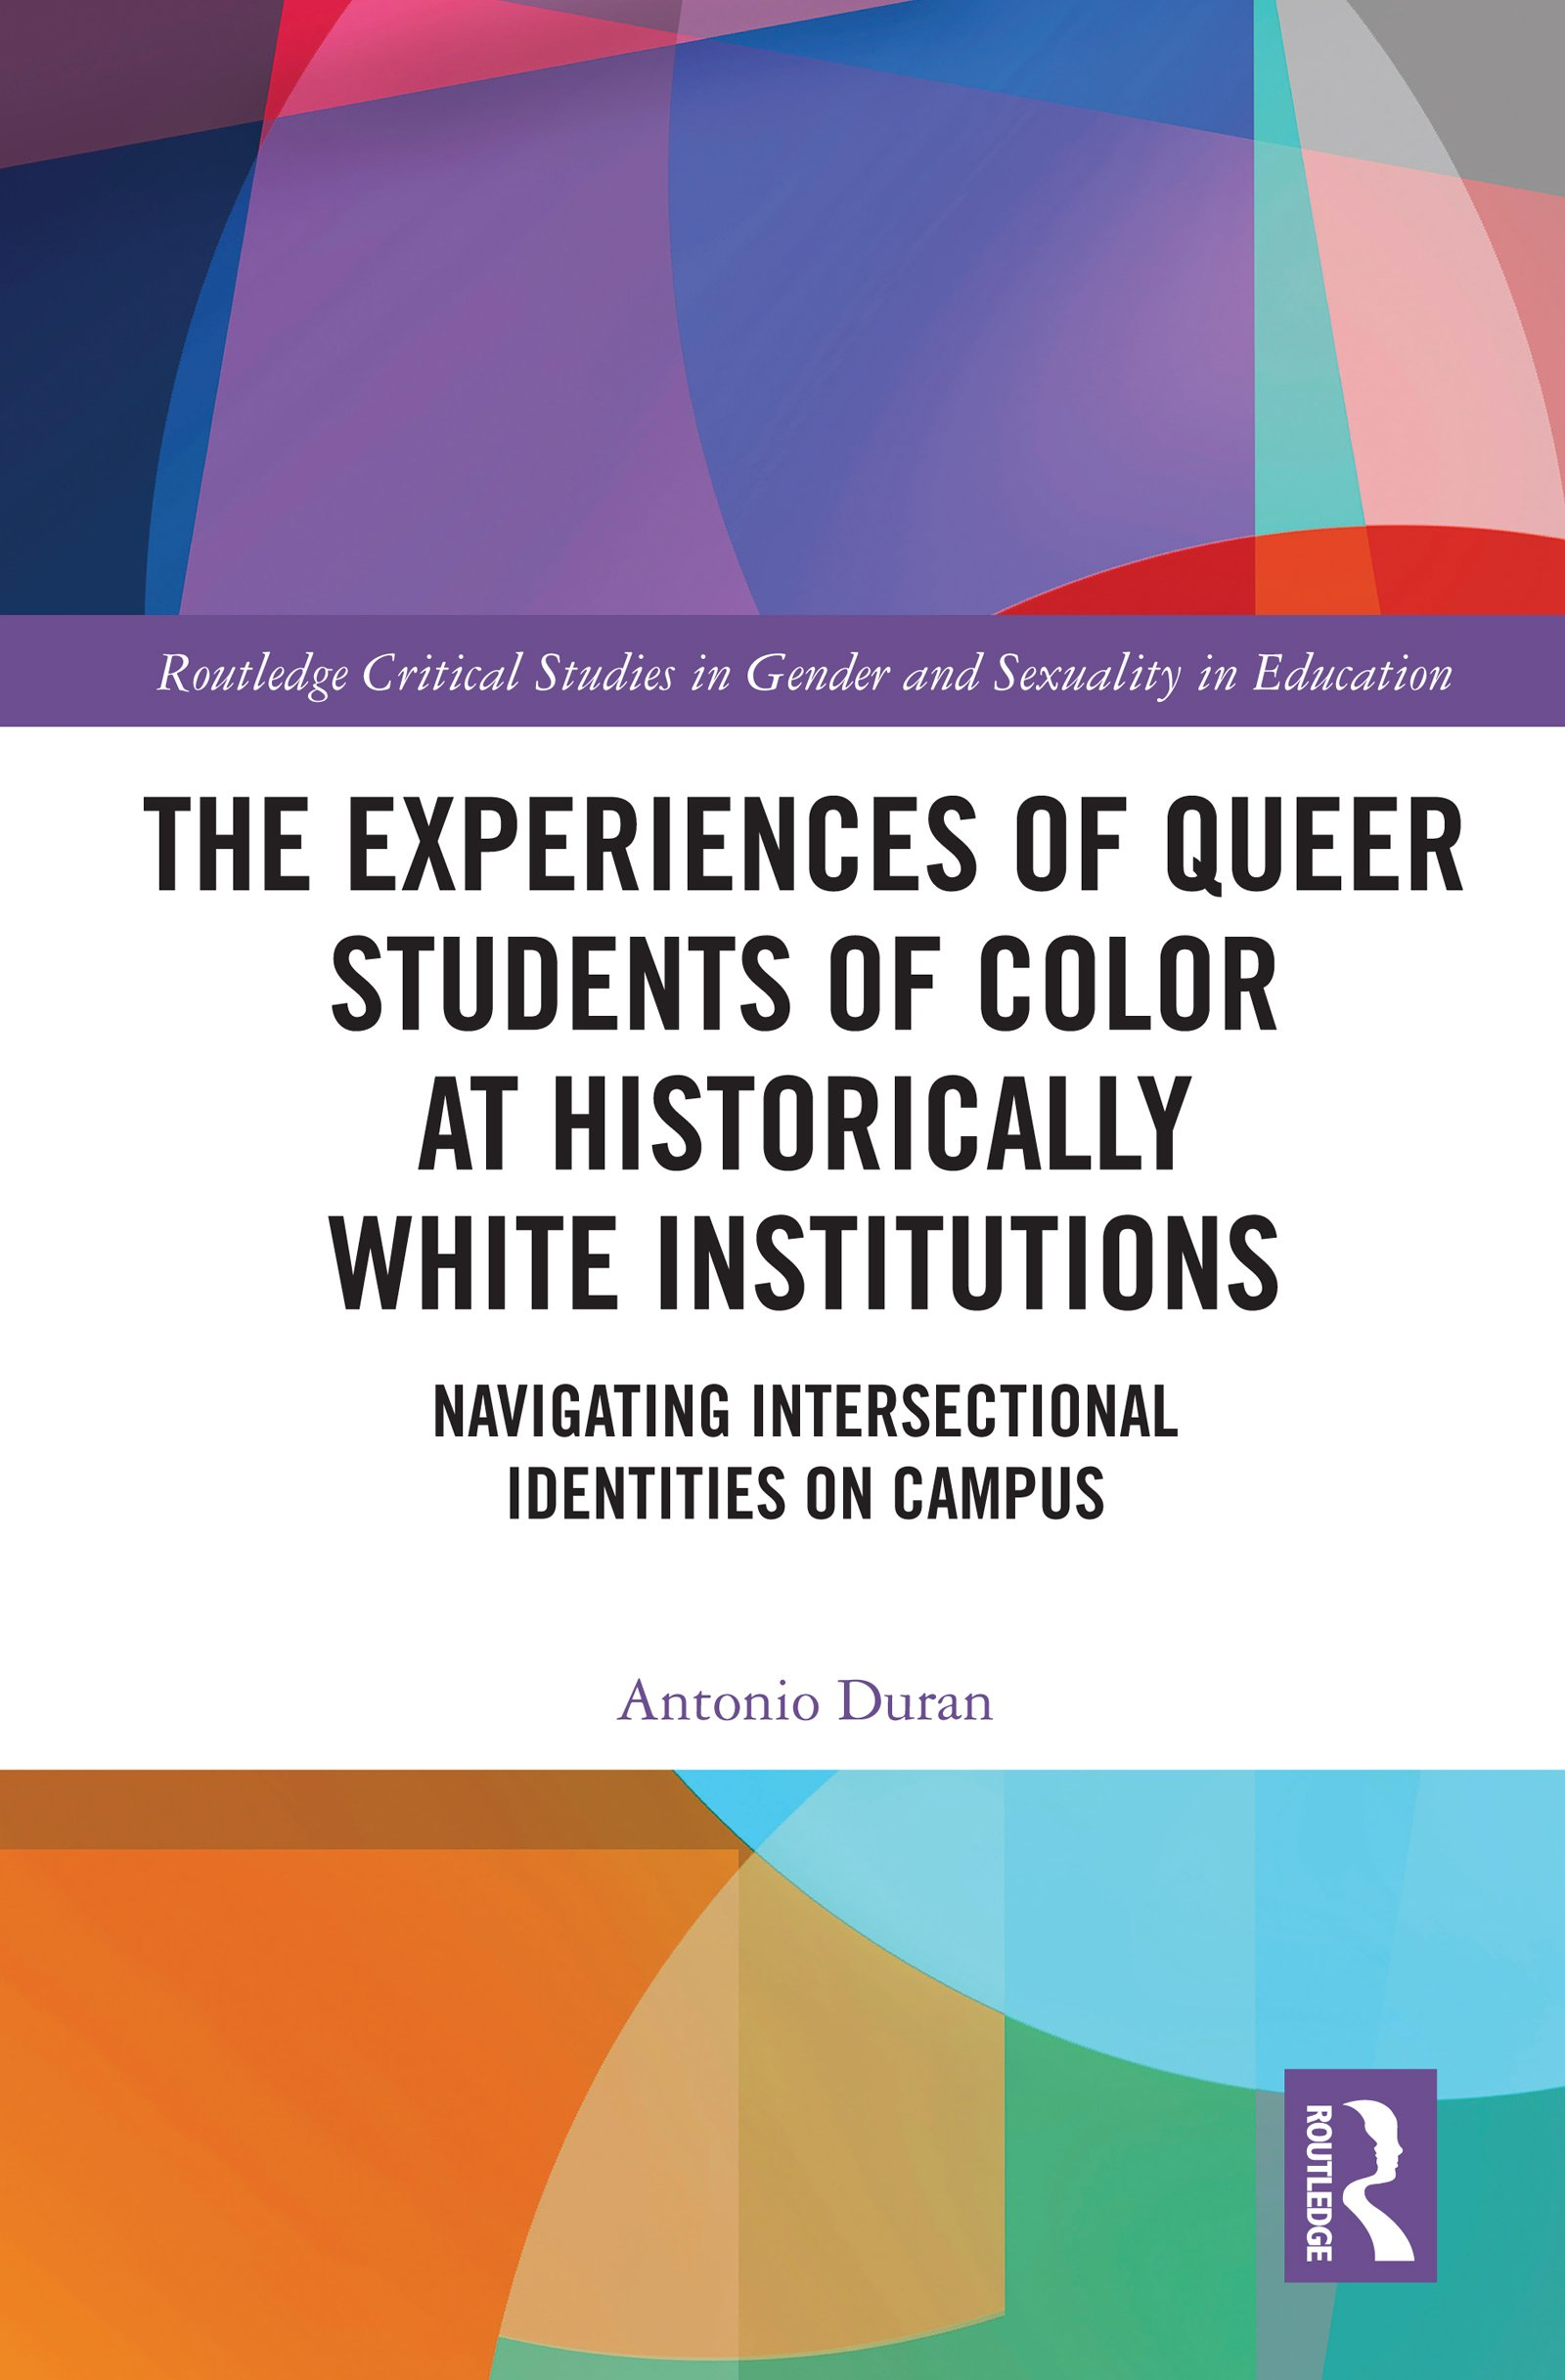 The Experiences of Queer Students of Color at Historically White Institutions